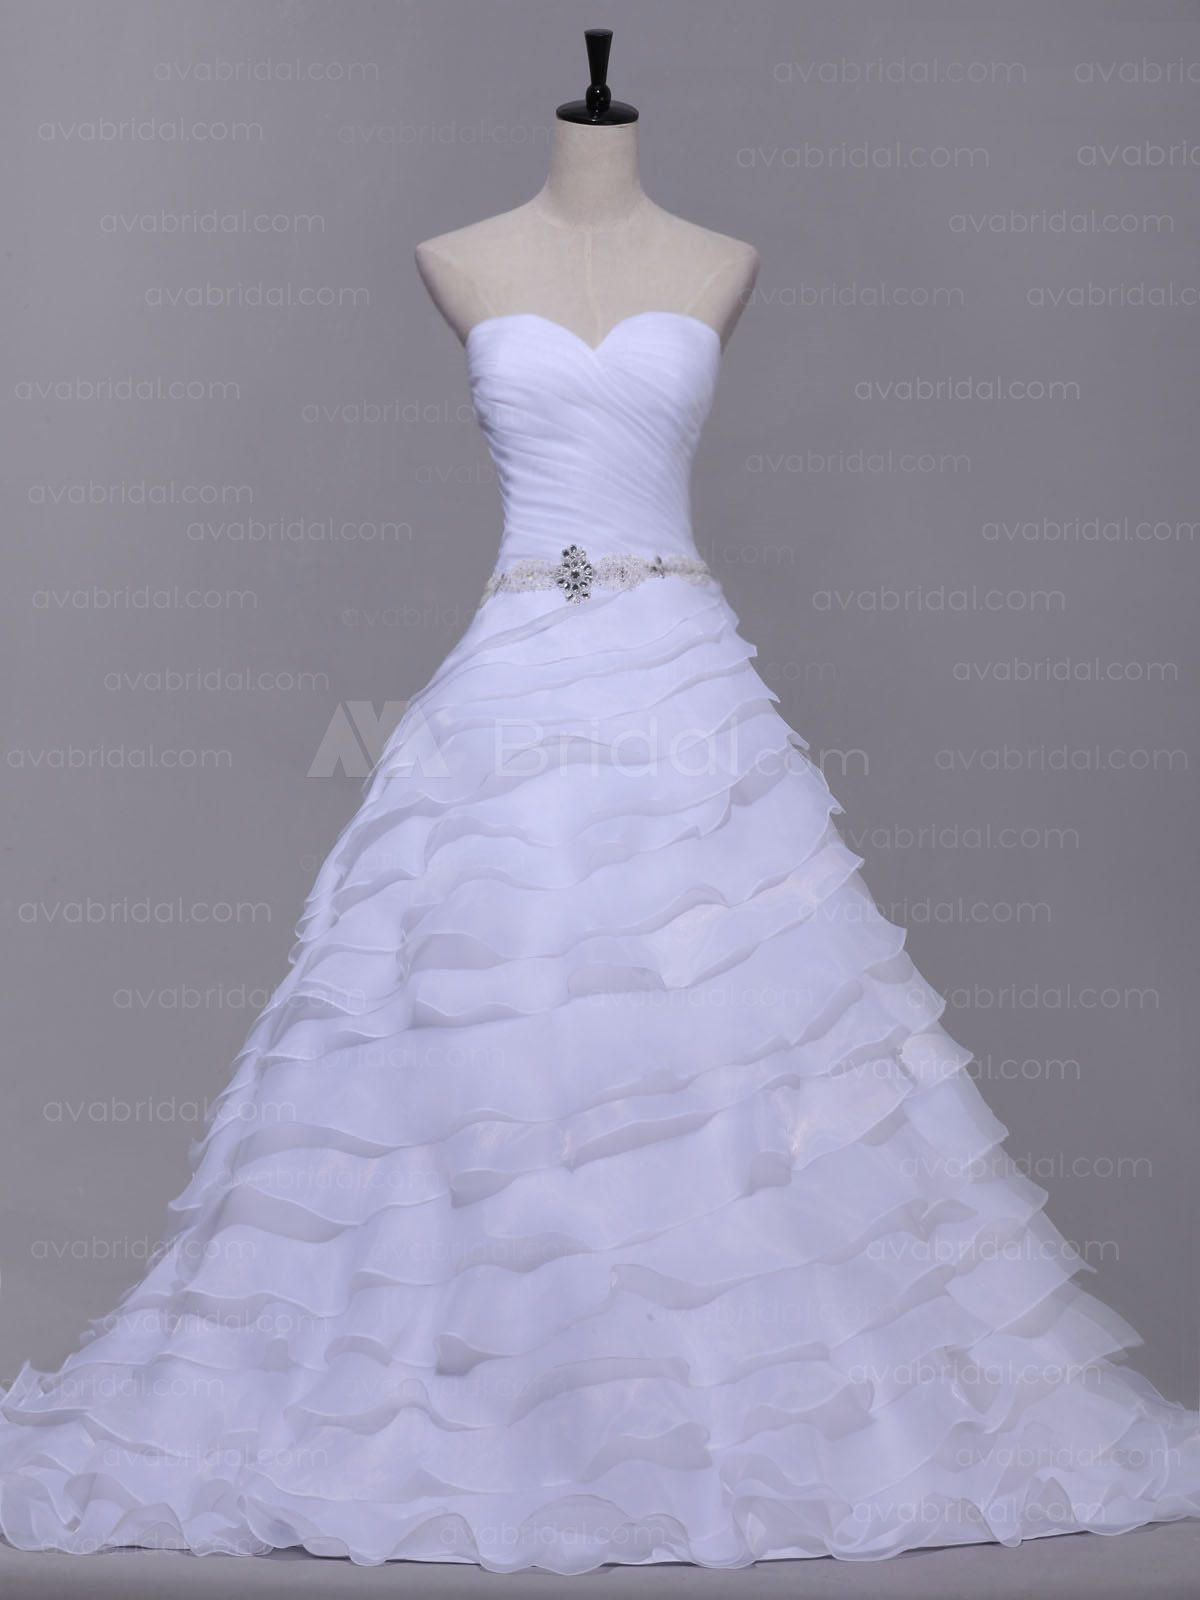 Chic Tiered wedding dress W869-front